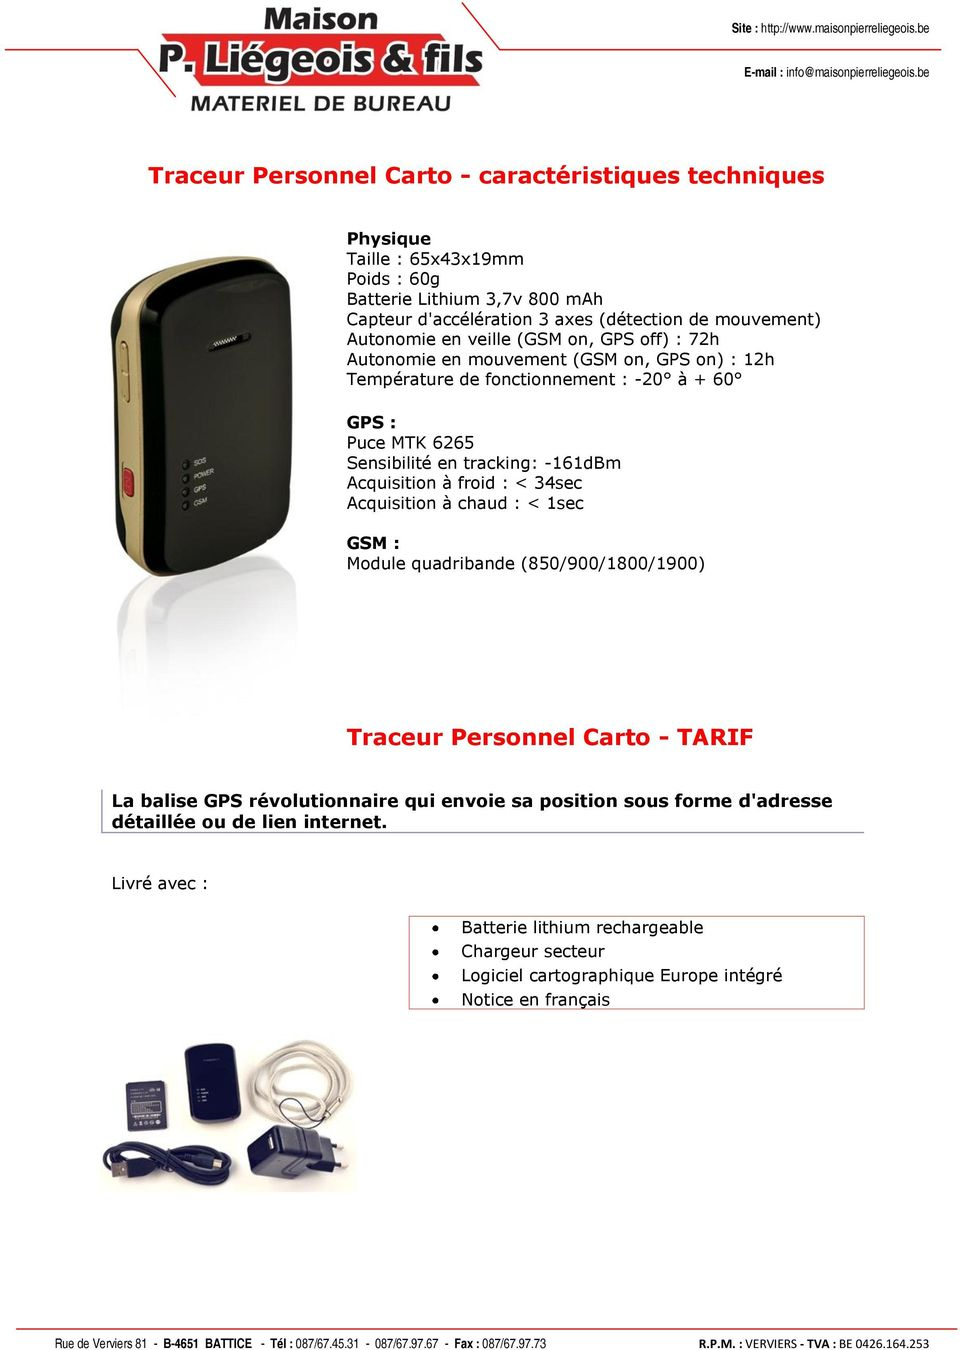 -161dBm Acquisition à froid : < 34sec Acquisition à chaud : < 1sec GSM : Module quadribande (850/900/1800/1900) Traceur Personnel Carto - TARIF La balise GPS révolutionnaire qui